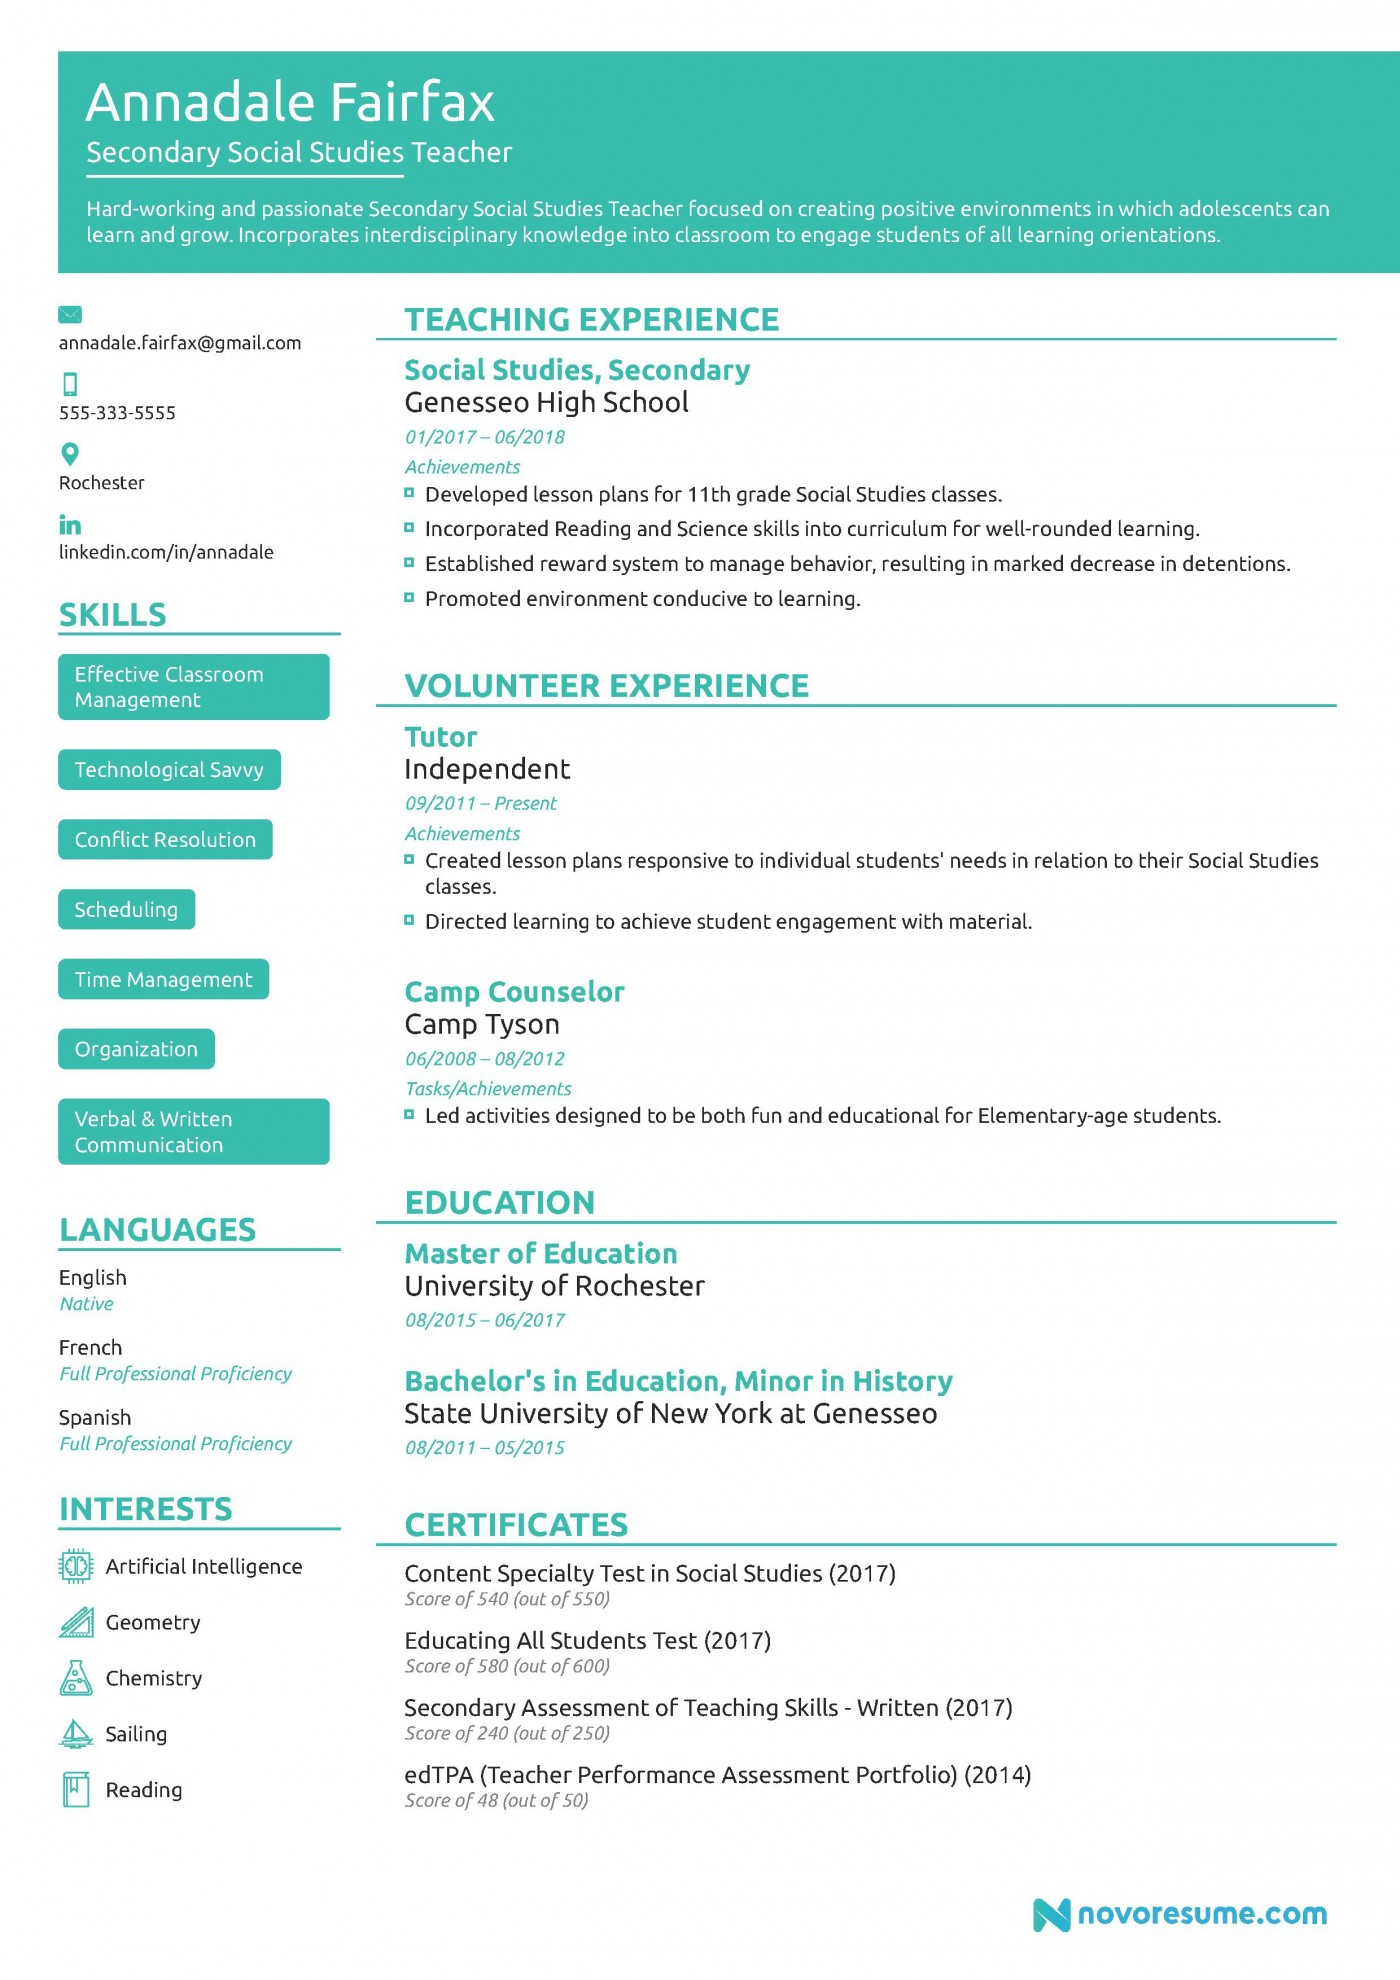 009 Wondrou Resume Template For Teacher Photo  Free Download Australia Microsoft Word 20071400